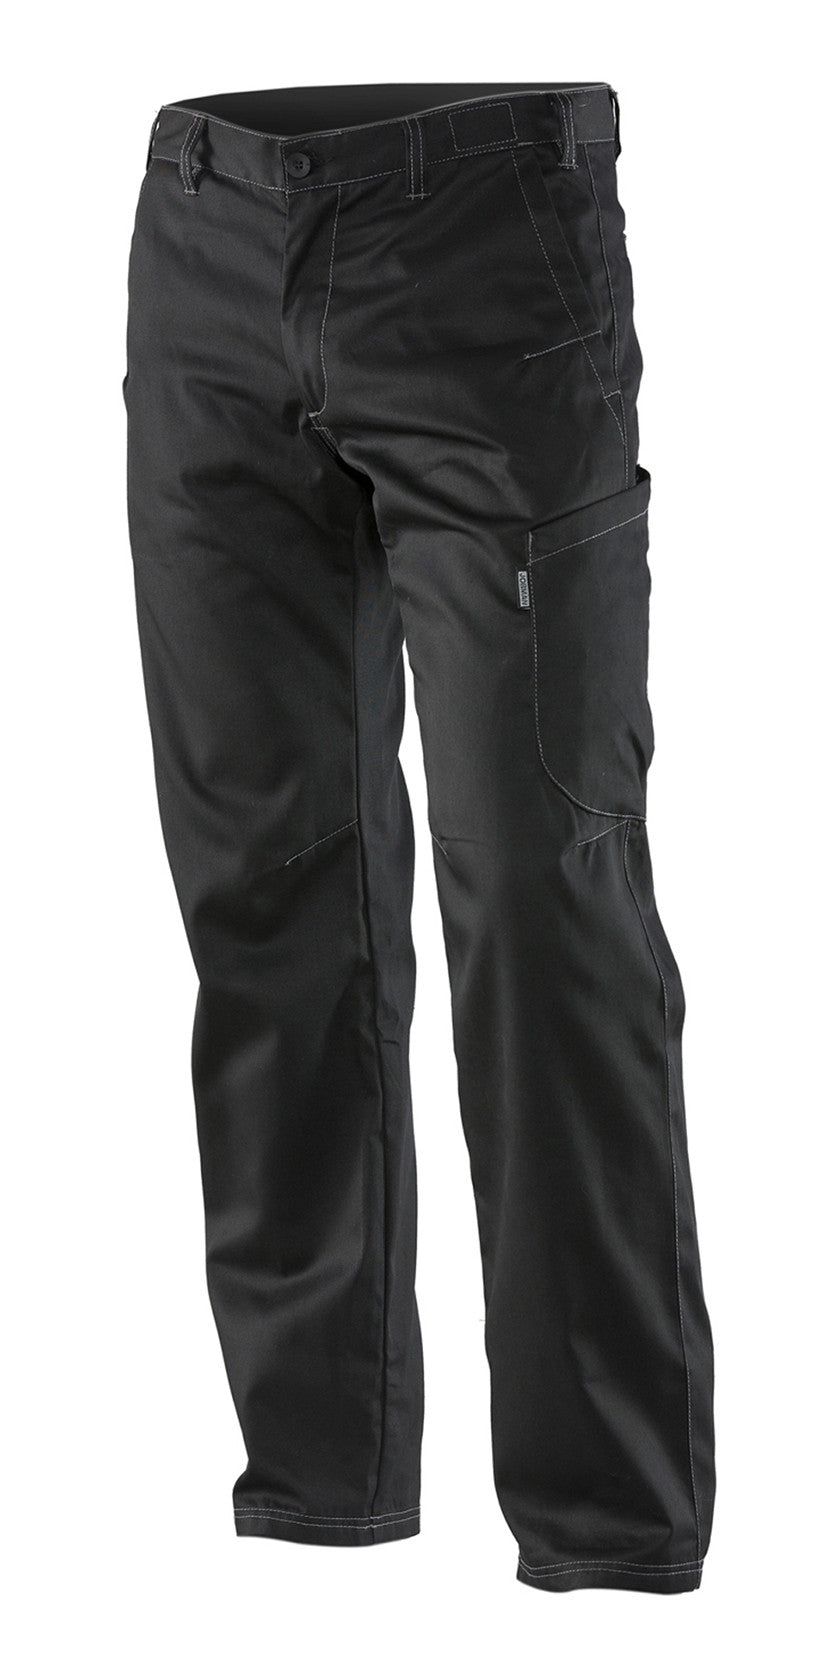 Workwear Service Trousers | 2122 Jobman Workwear